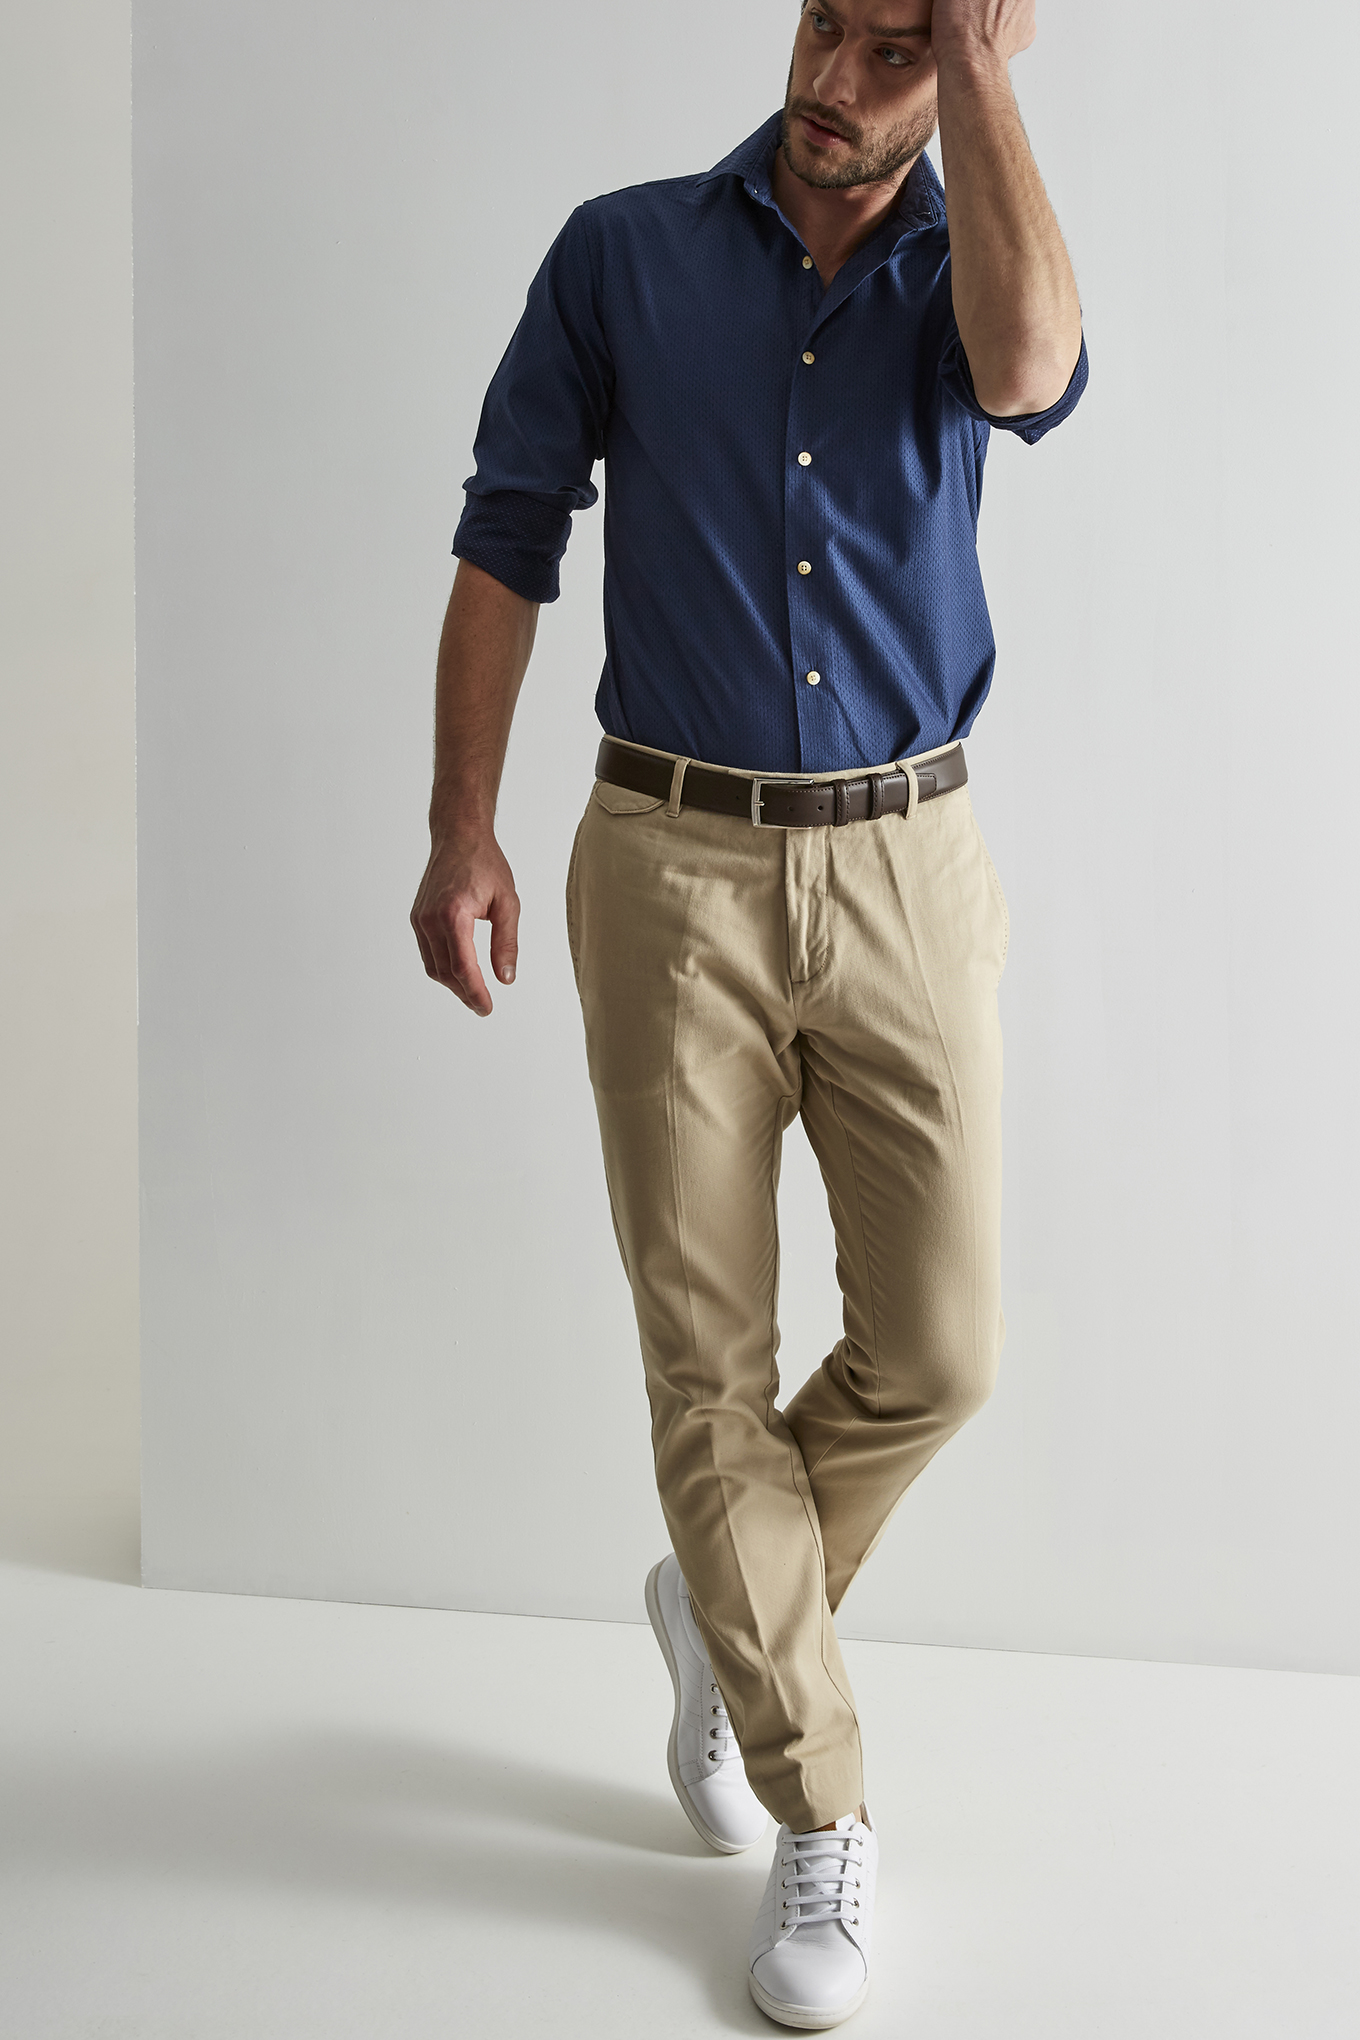 Shirt Blue Casual Man